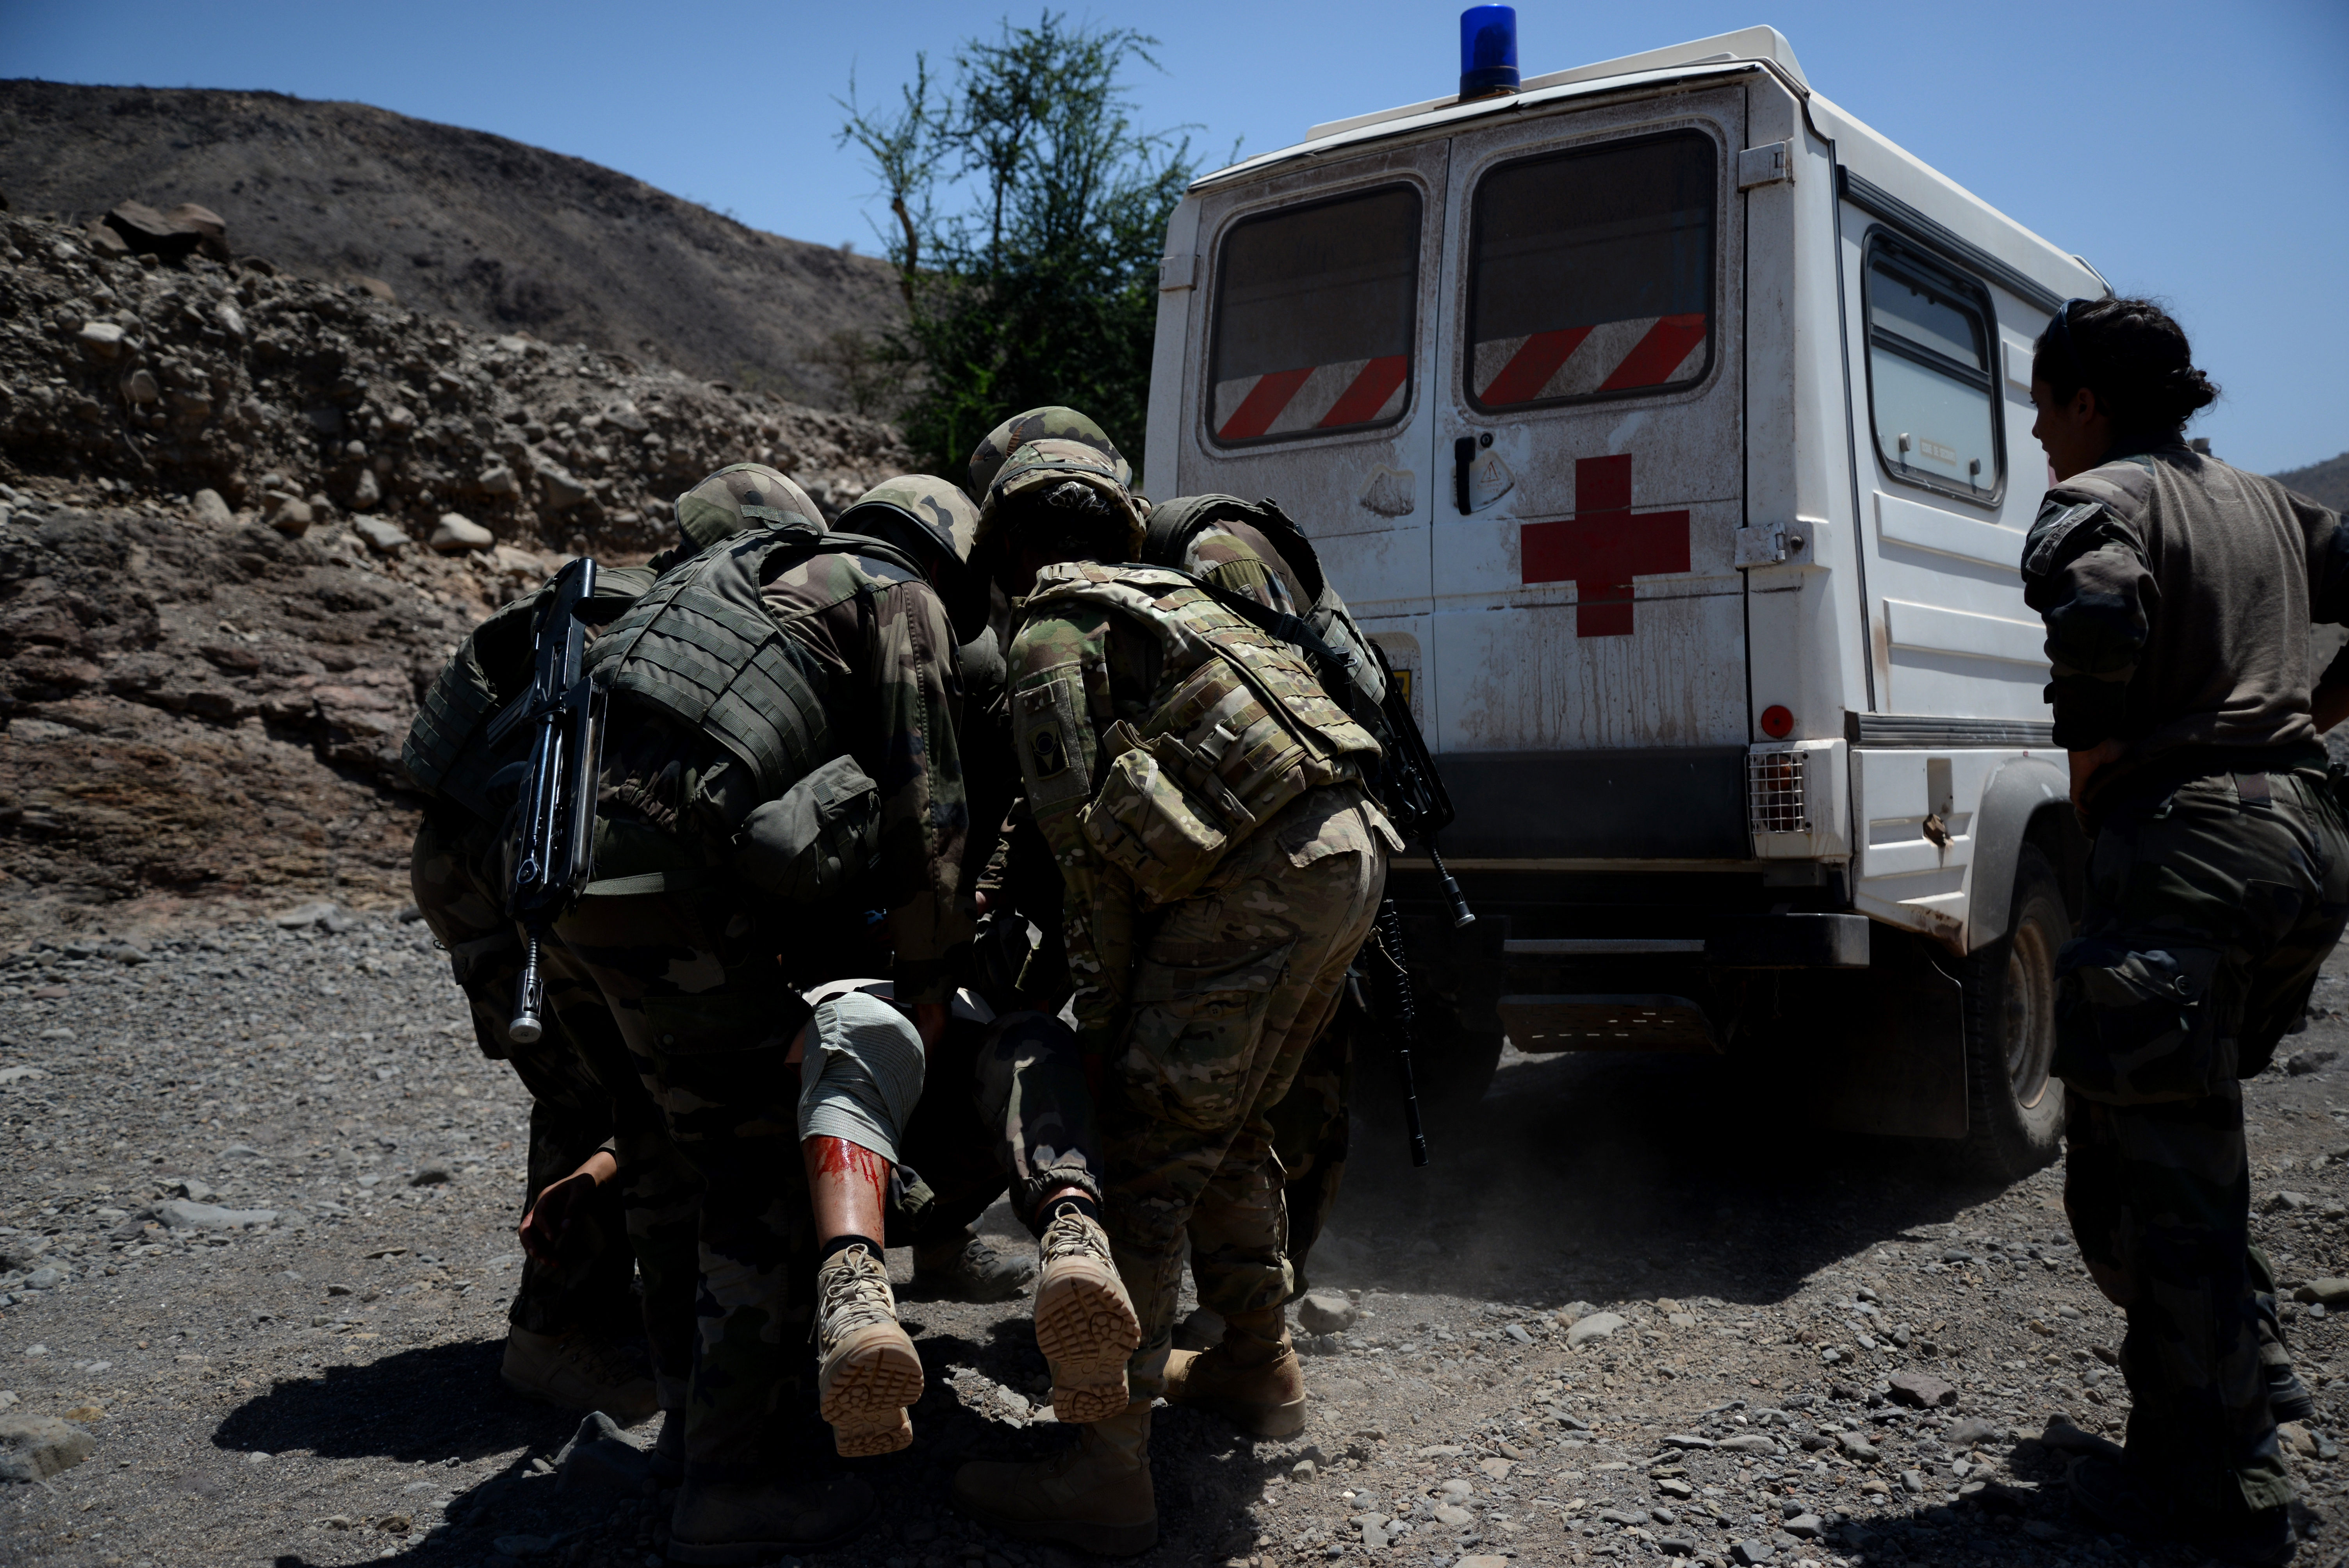 French and U.S. Army Soldiers carry a simulated injured victim to safety during a field training exercise March 17, 2016, in Arta, Djibouti. This is one of 60 engagements U.S. and French forces have held since September, providing another opportunity to build teamwork amongst the allies. (U.S. Air Force photo by Staff Sgt. Kate Thornton)